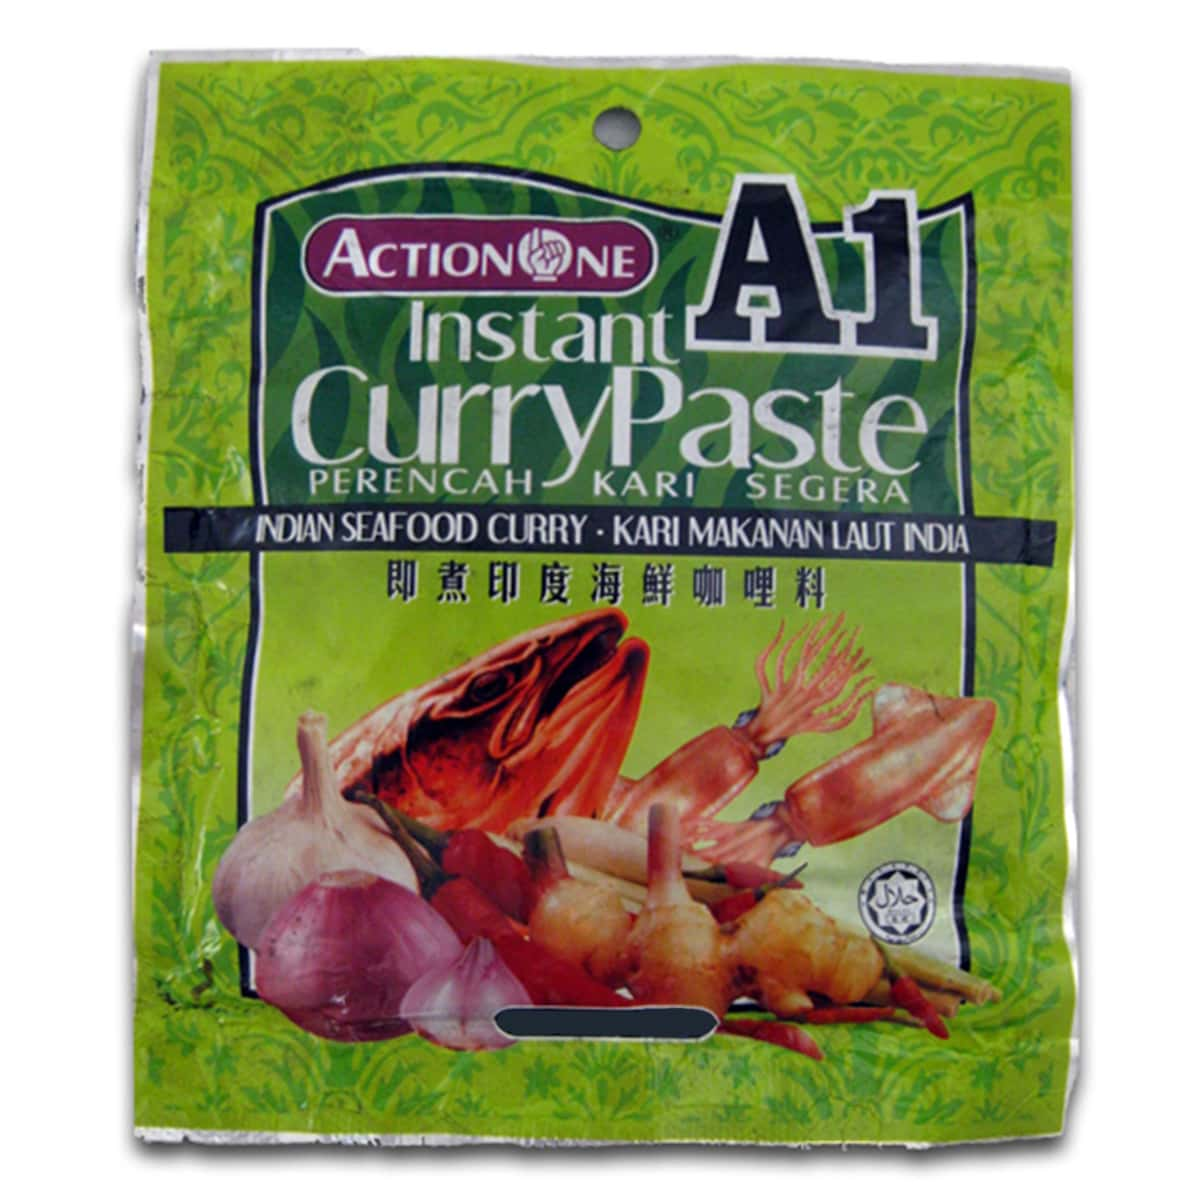 Buy Action One (A1) Instant Curry Paste (Indian Seafood Curry) - 230 gm